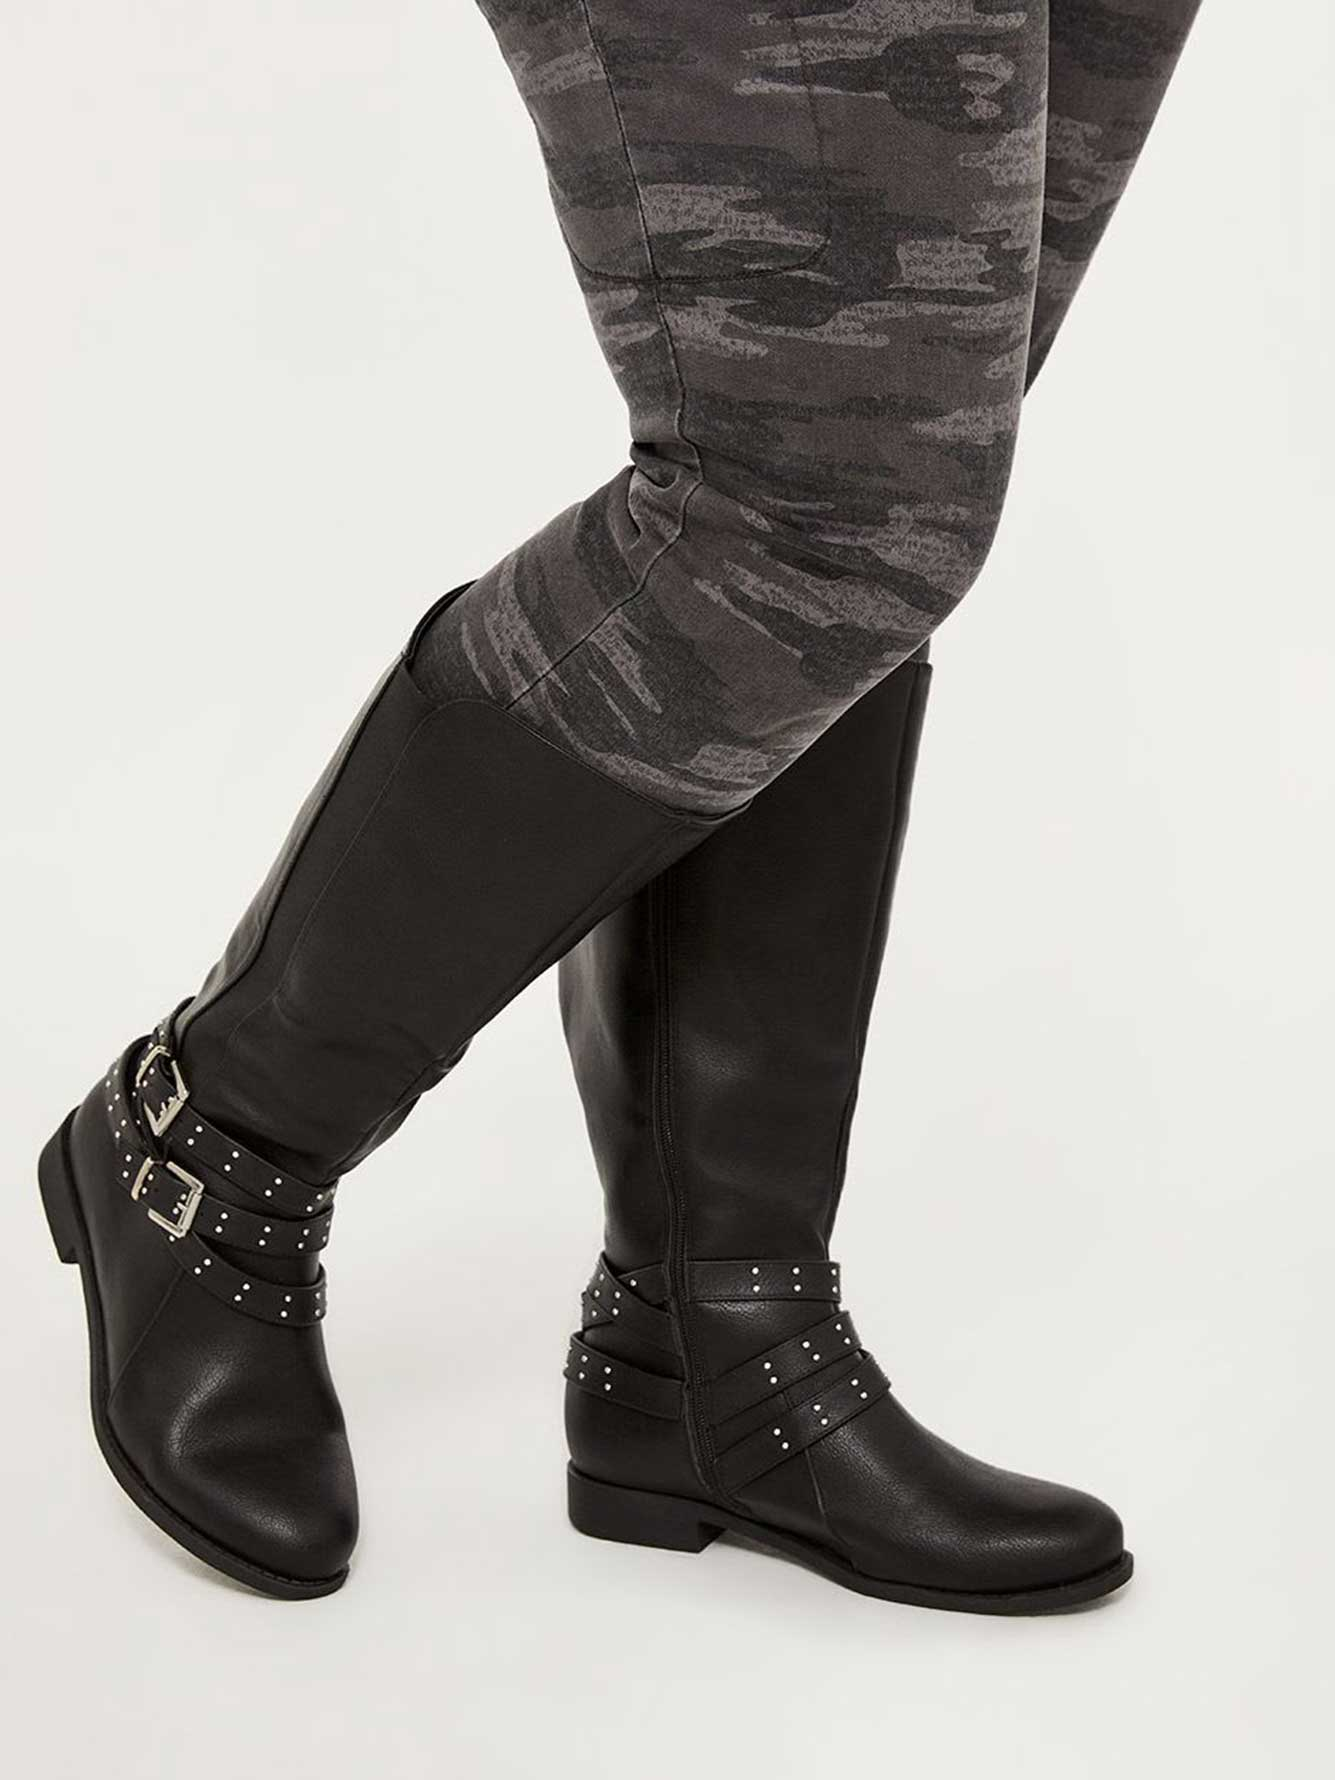 Extra Wide Calf Tall Boots with Buckles and Studs